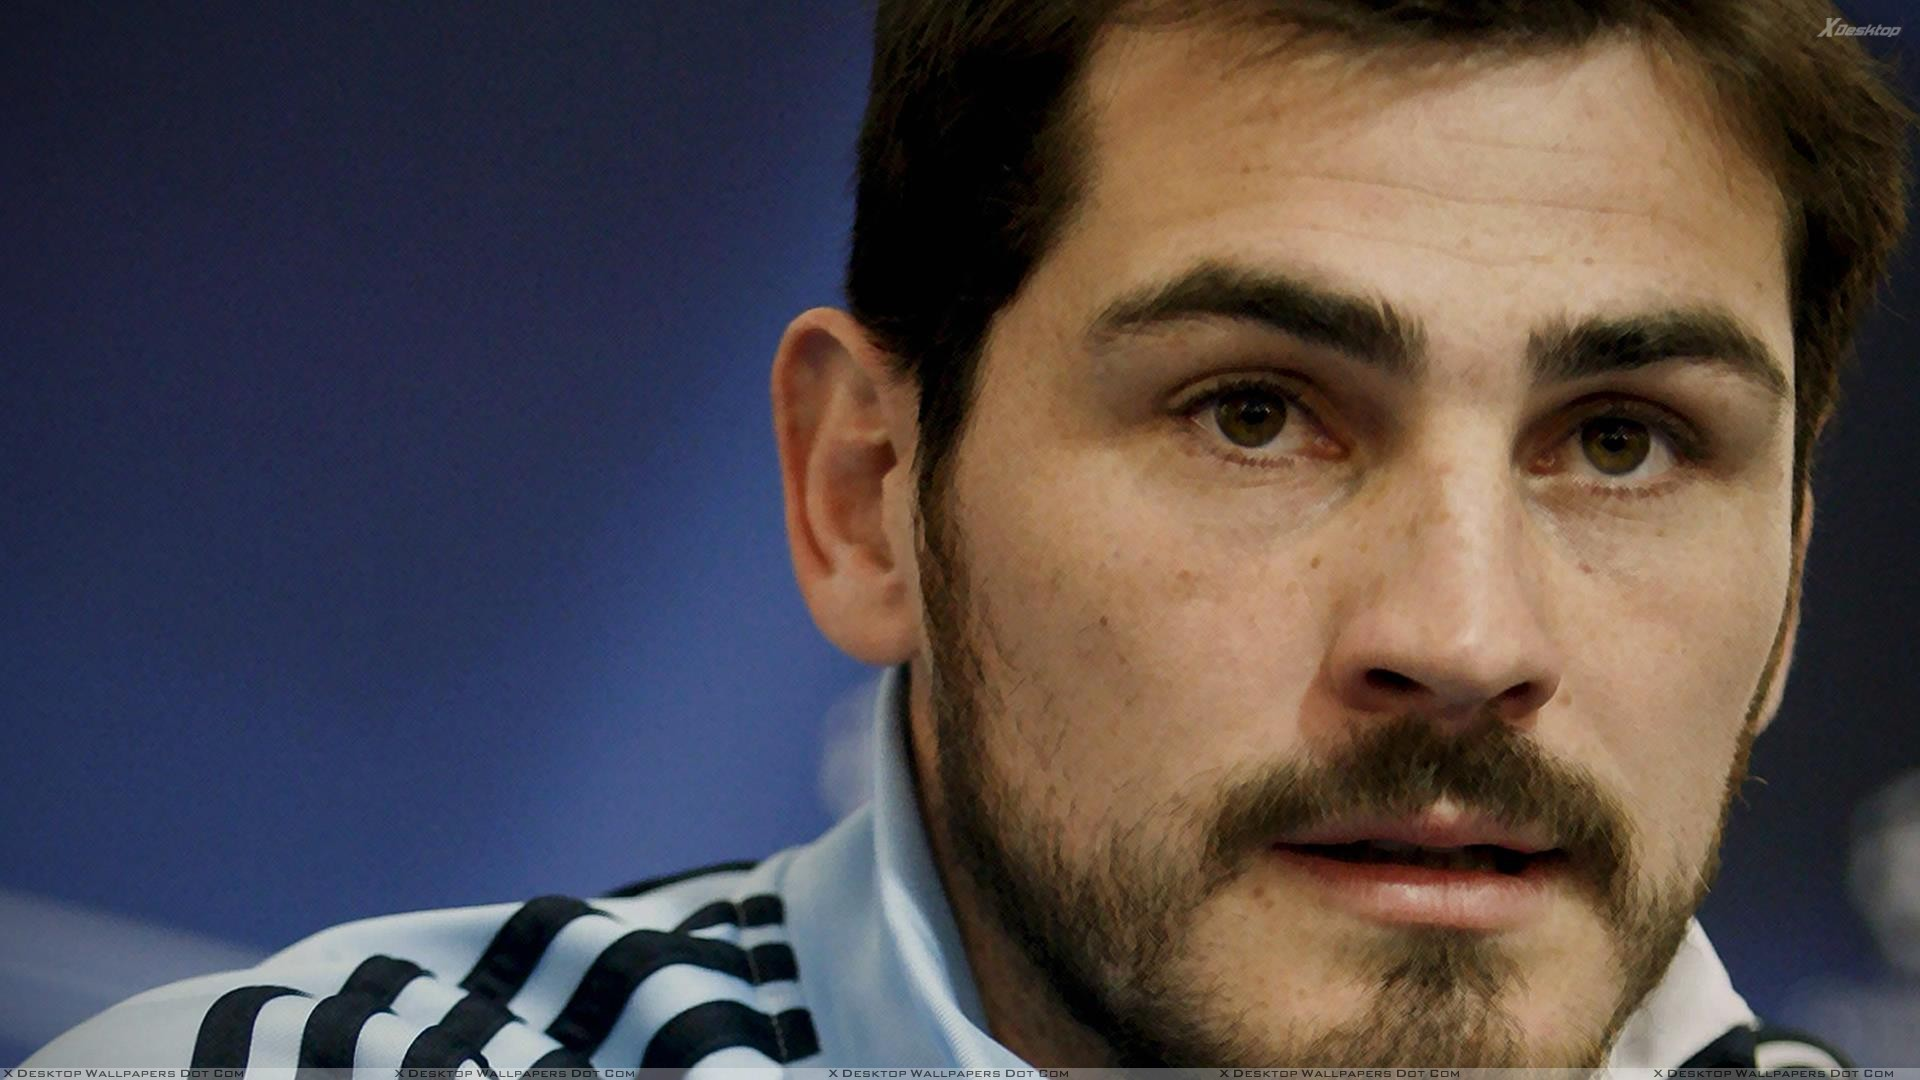 Iker Casillas Wallpapers Photos Images In HD